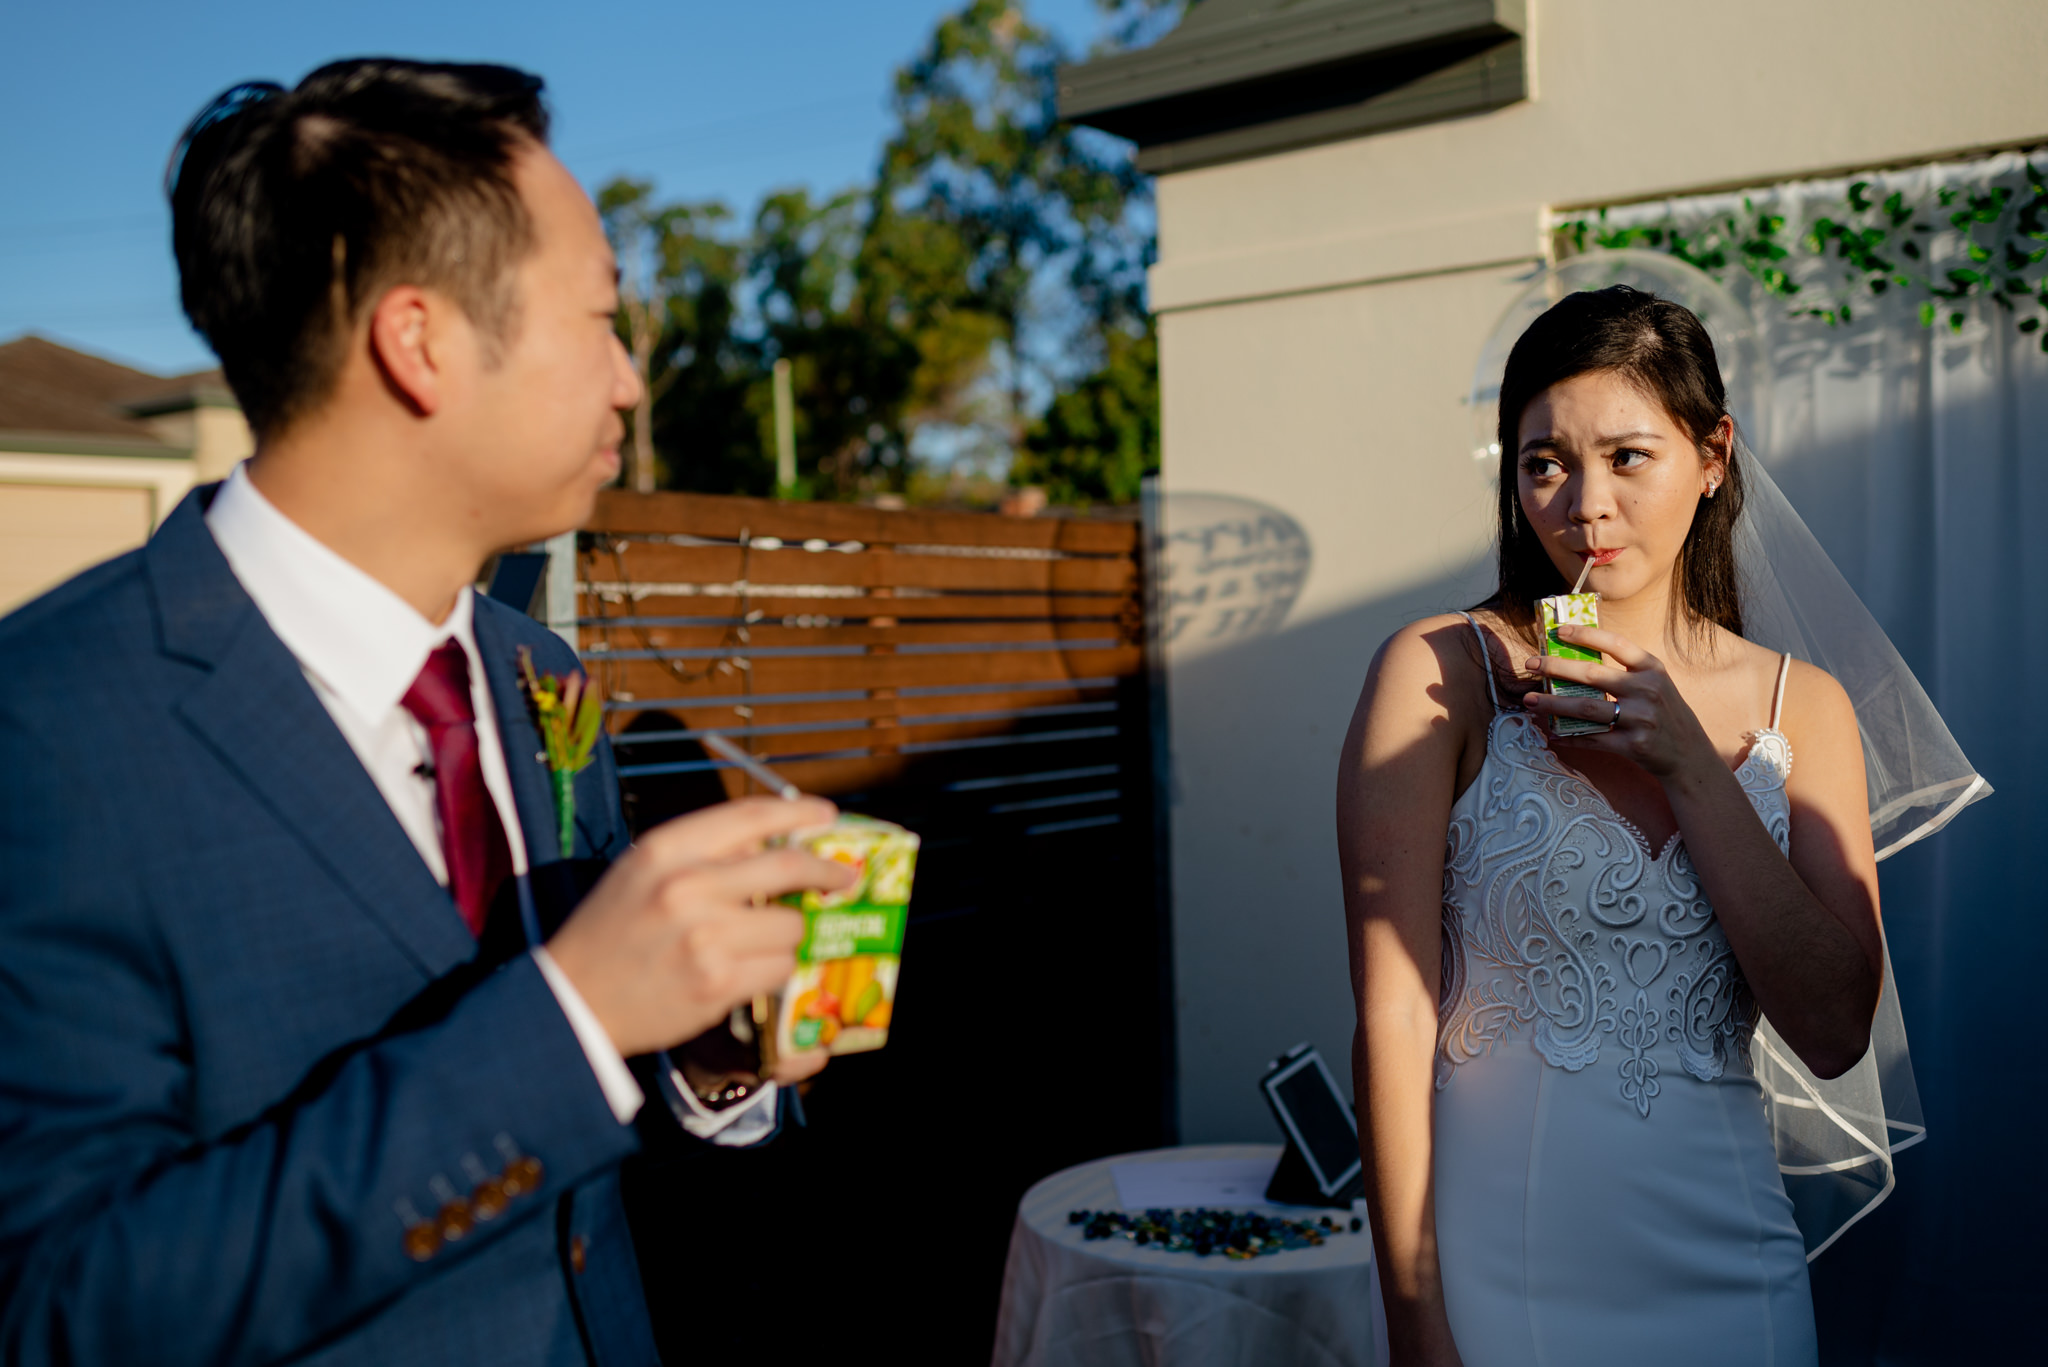 A bride looks at her new husband suggestively as they sip from juice boxes